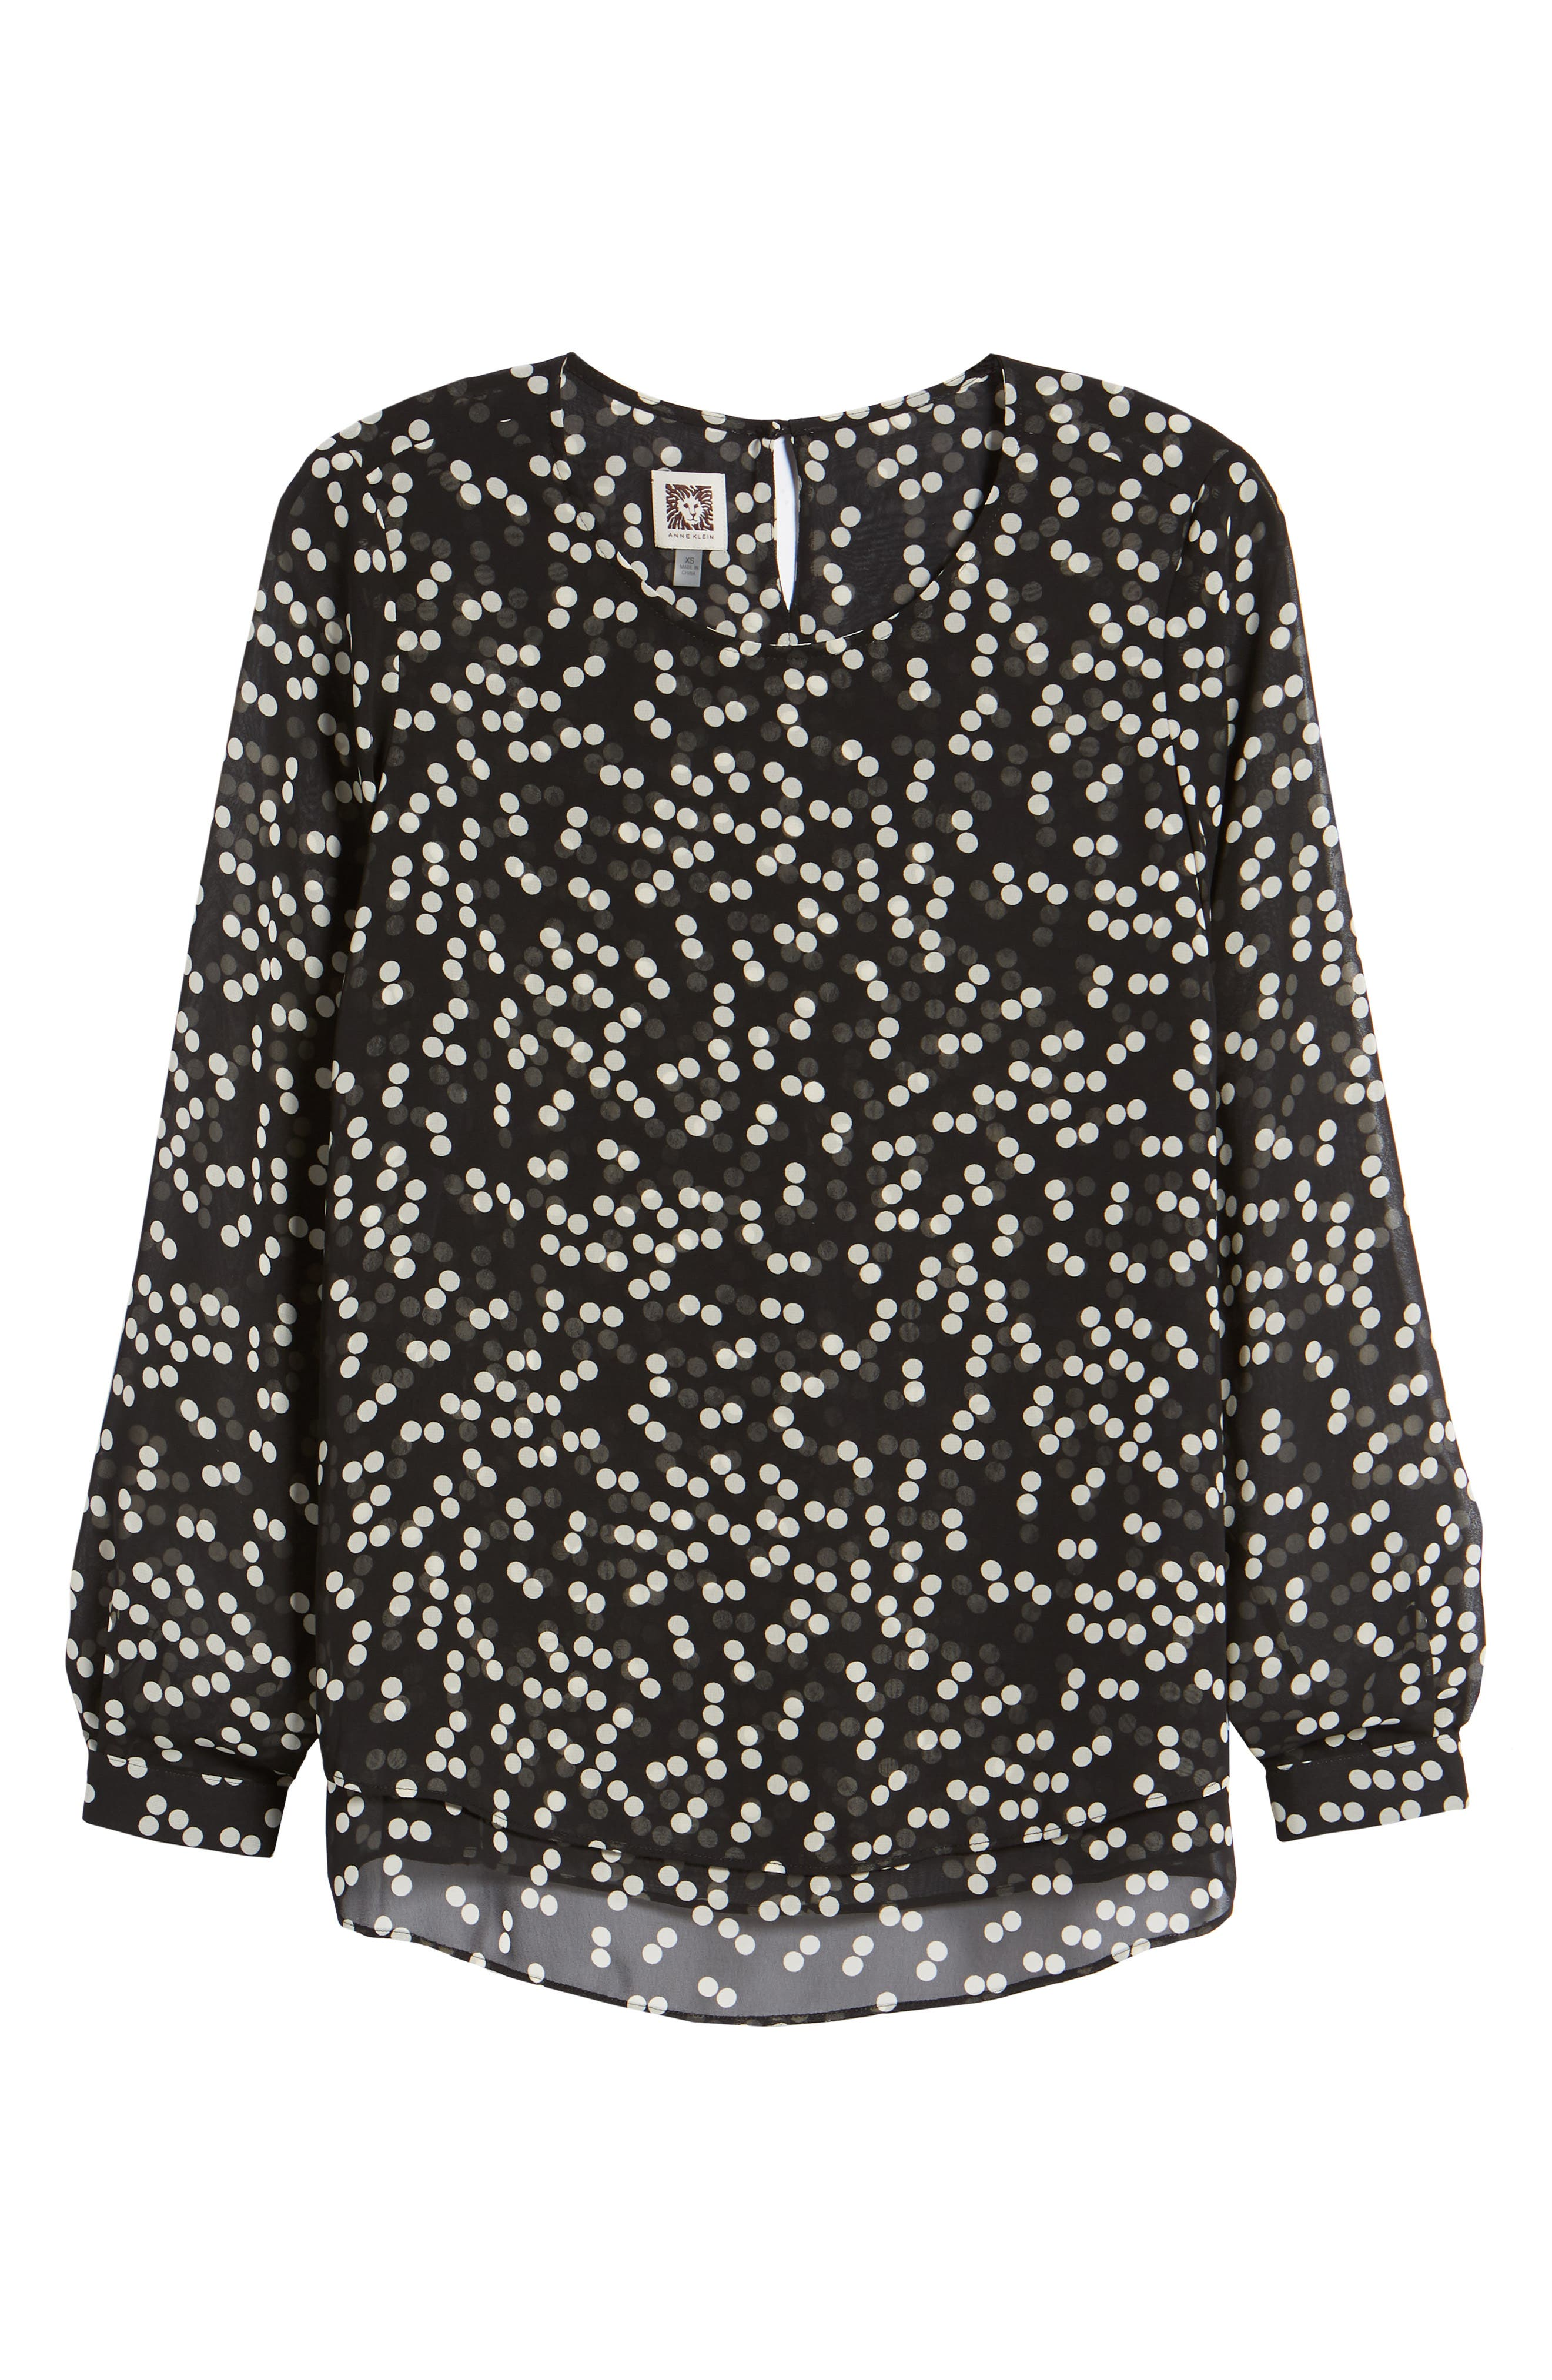 Double Layer Dot Print Blouse,                             Alternate thumbnail 7, color,                             Black/ Parchment